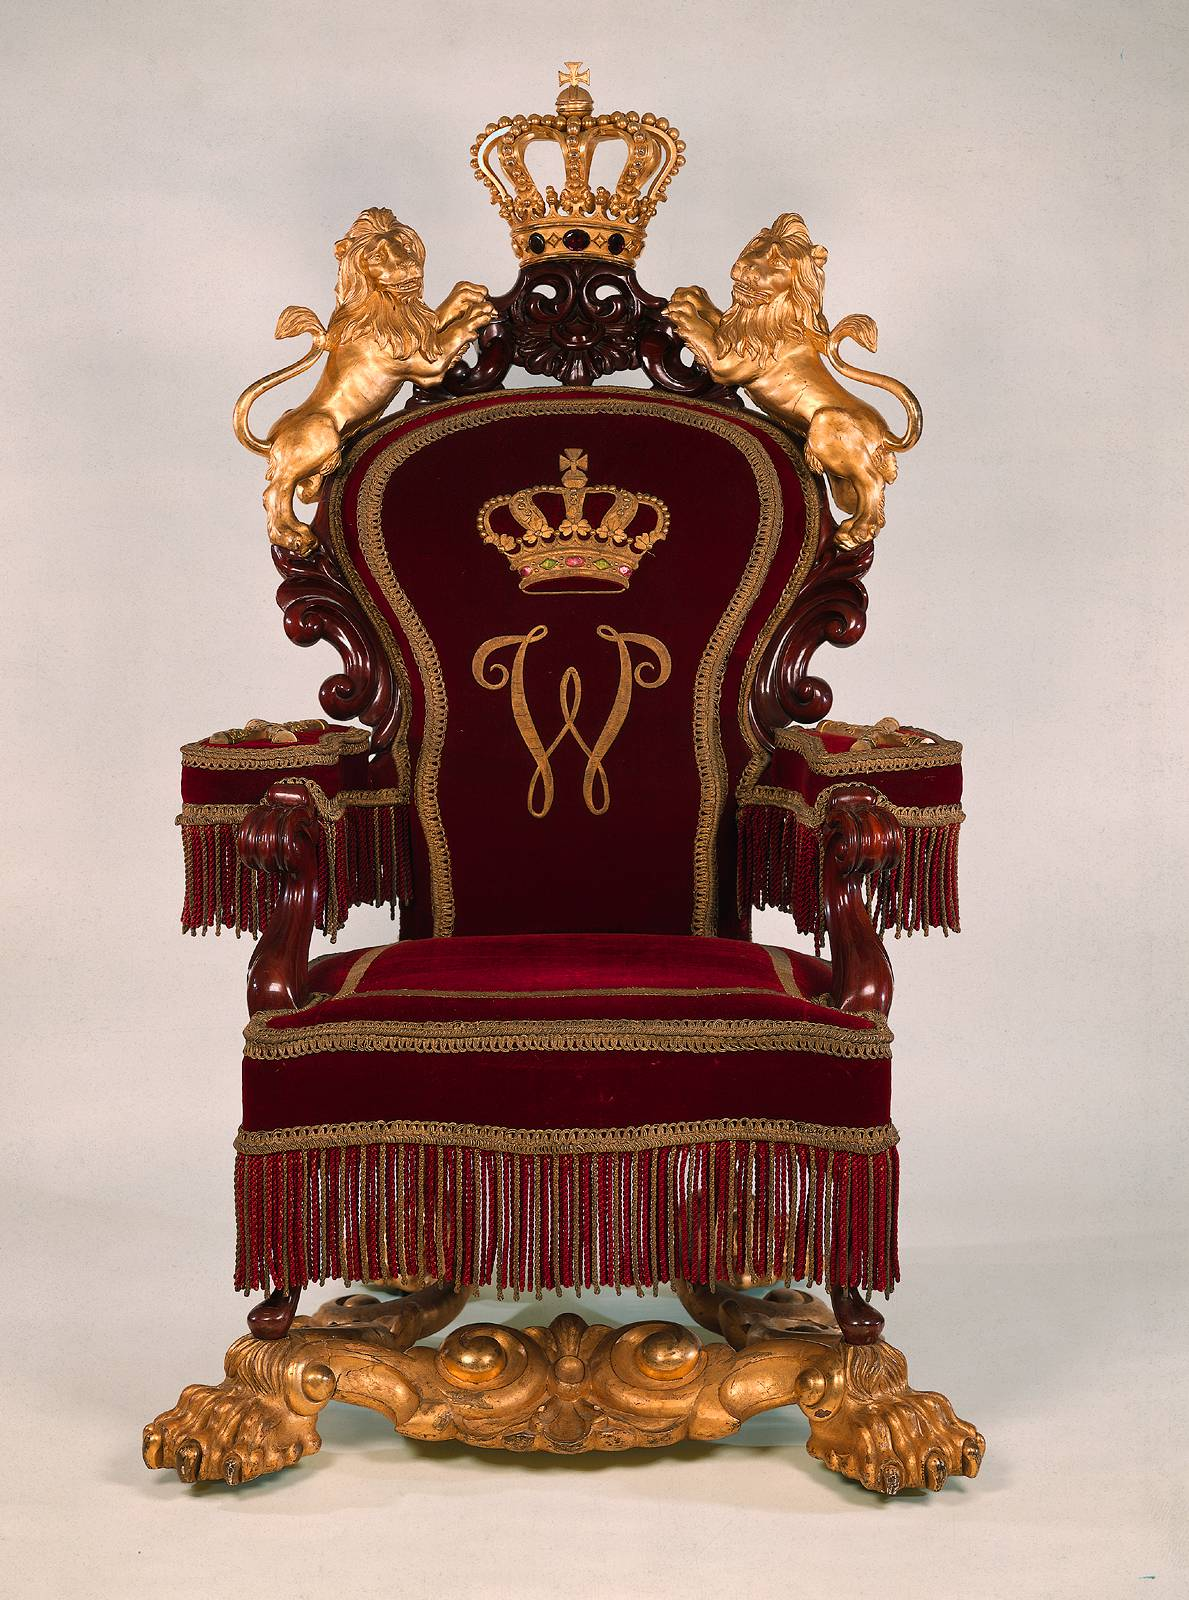 Horrix Throne King William III NL